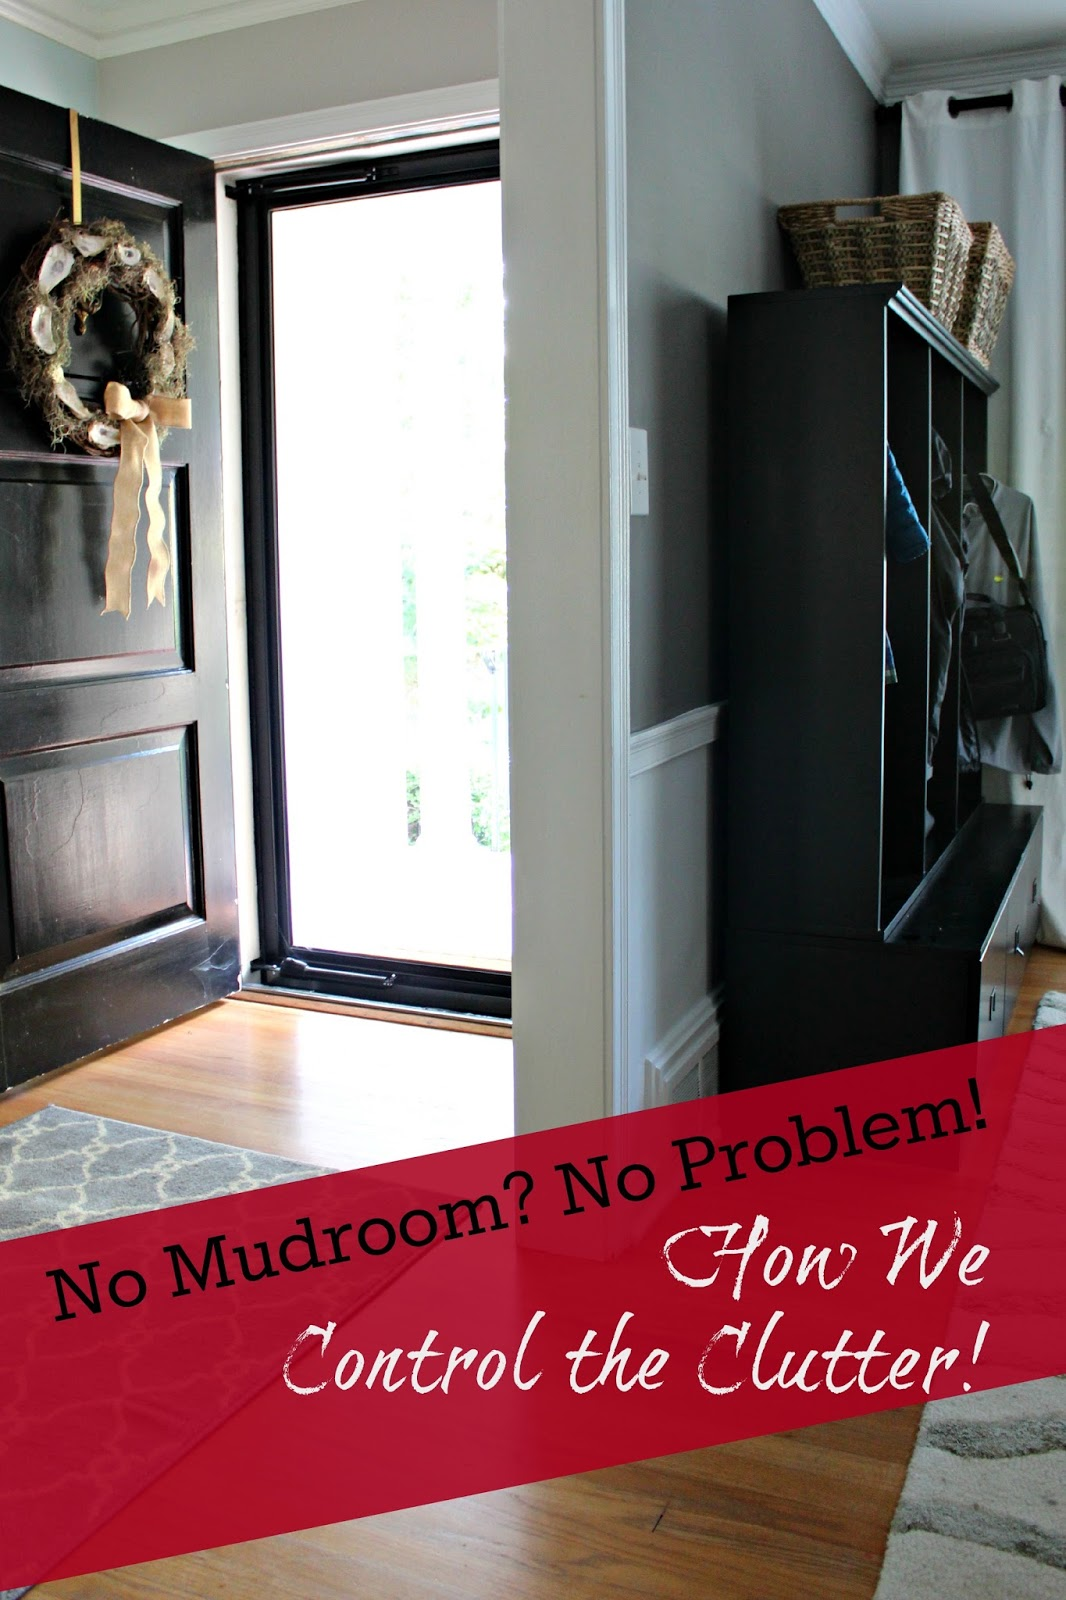 Our Makeshift Mudroom & No Mudroom? No Problem! Our Makeshift Mudroom - Southern State of Mind